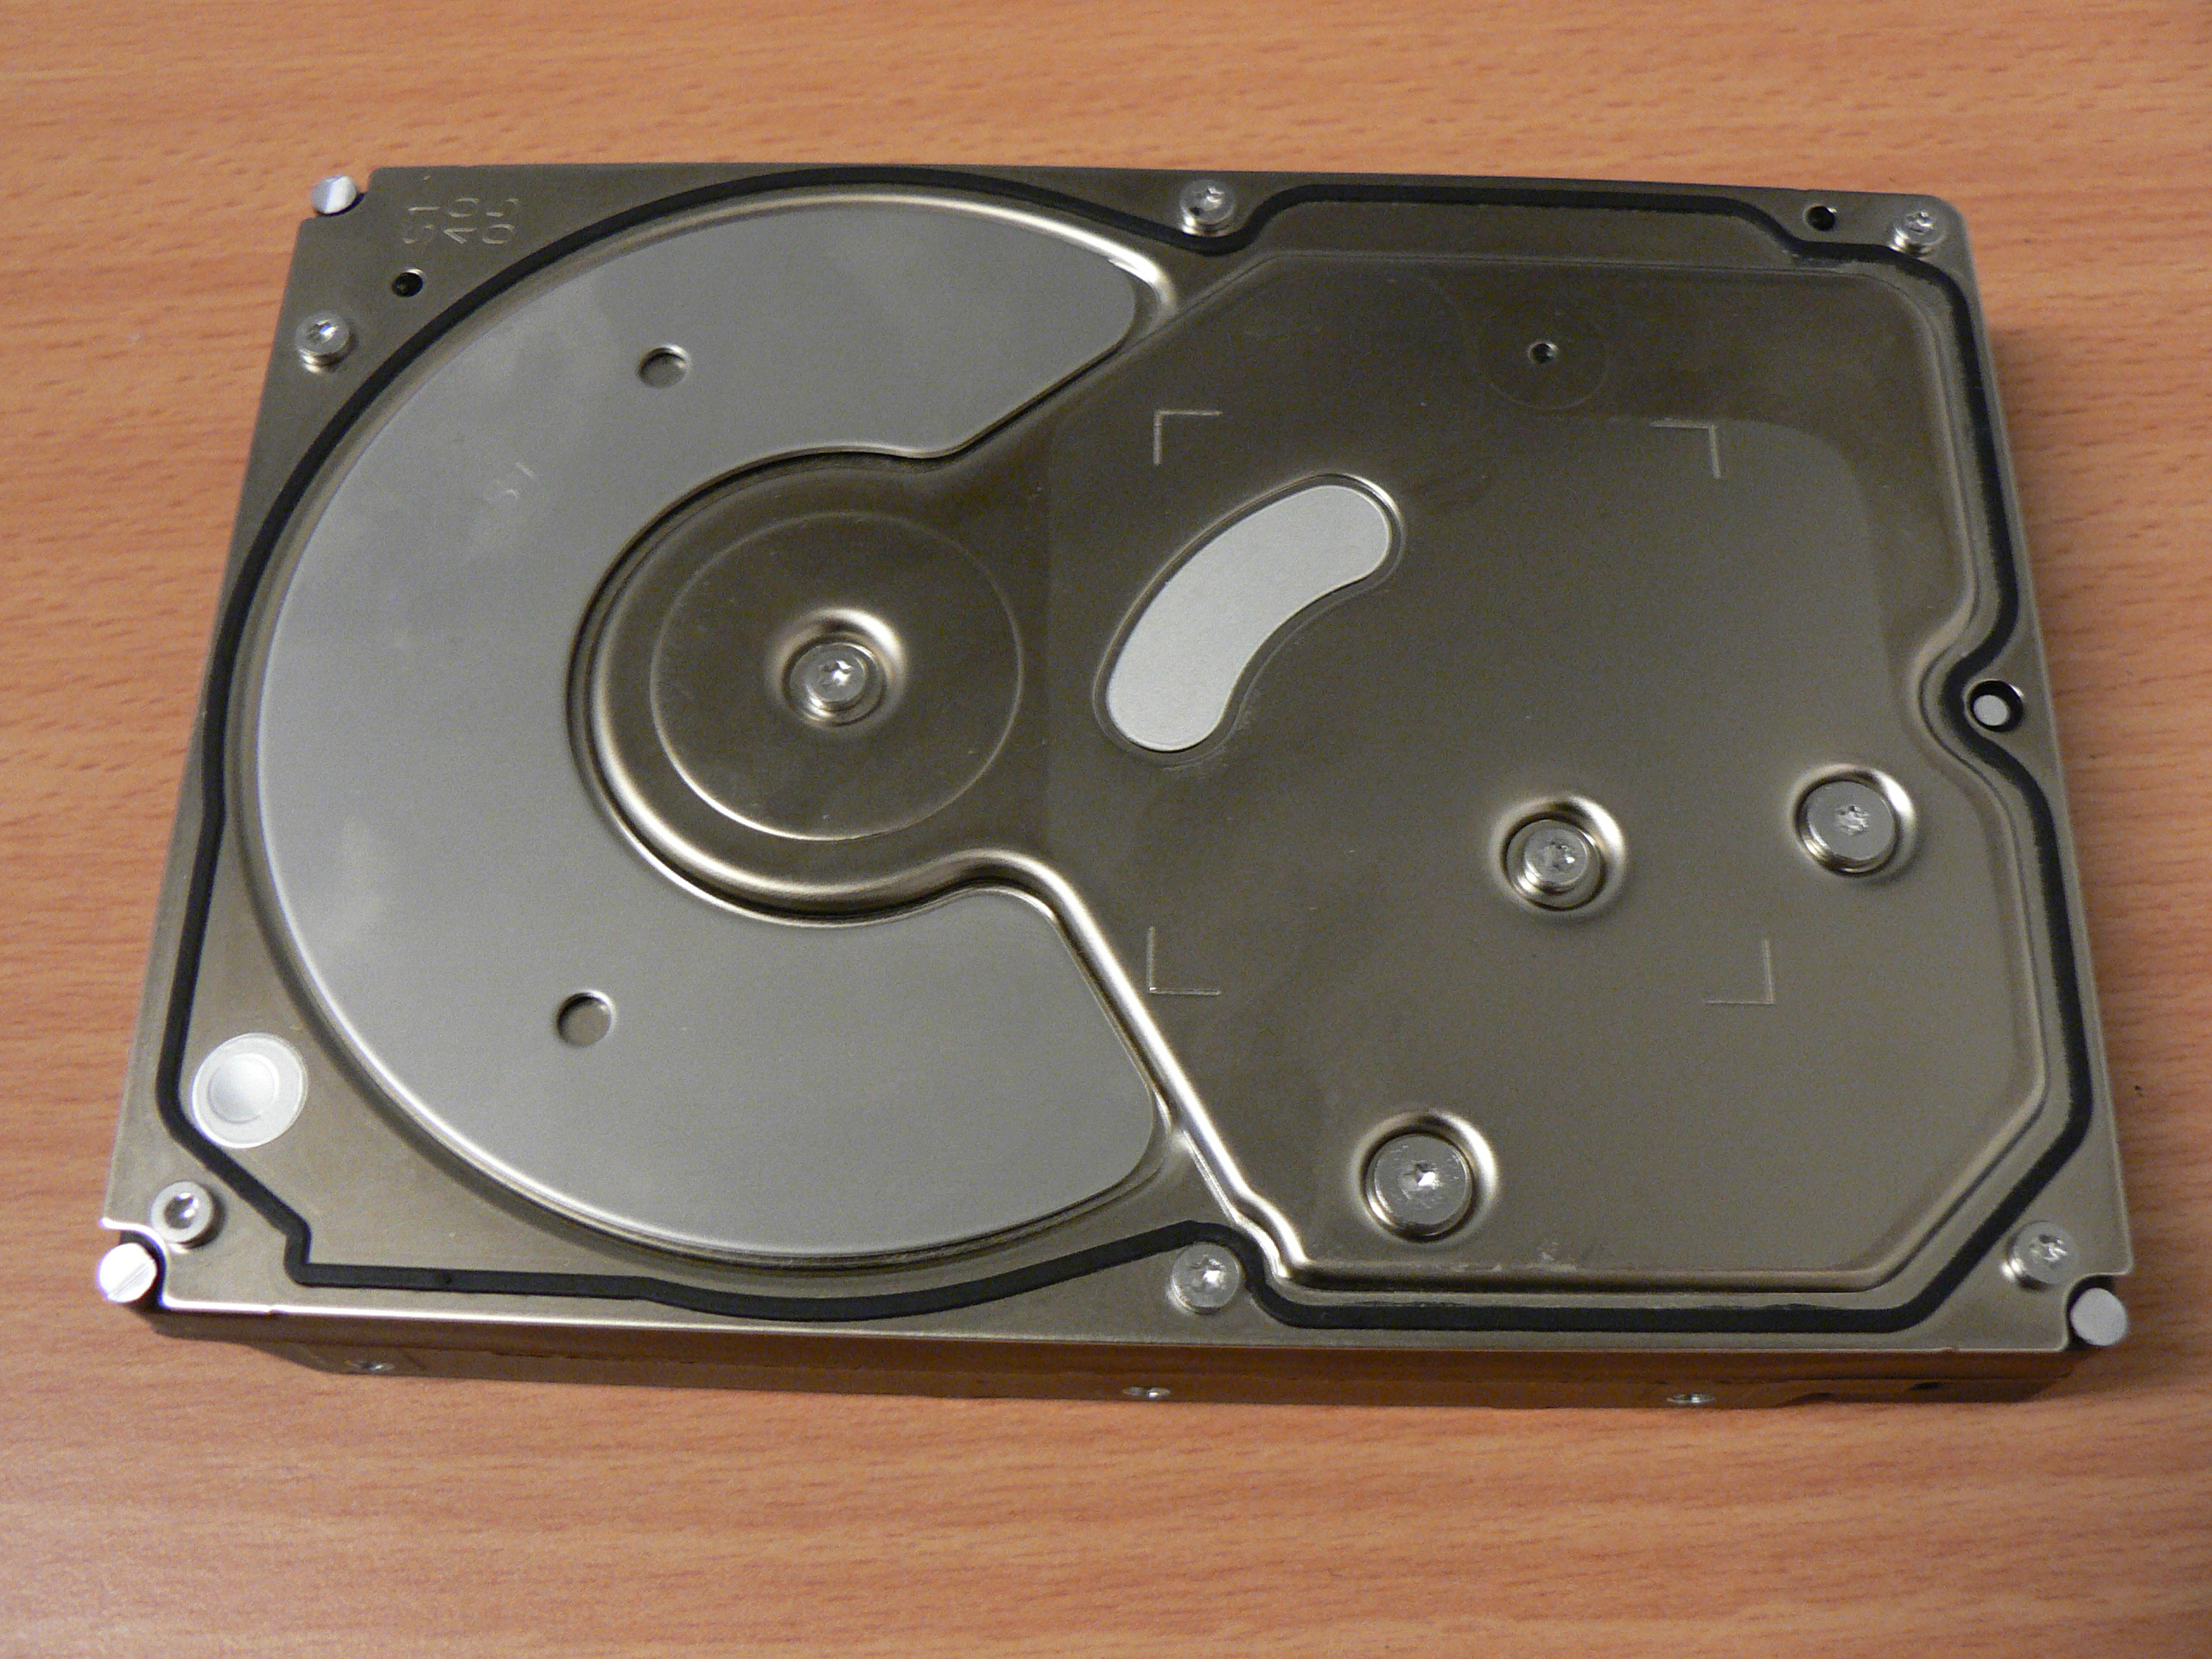 Picture of Crack Open a Hard Disk Drive